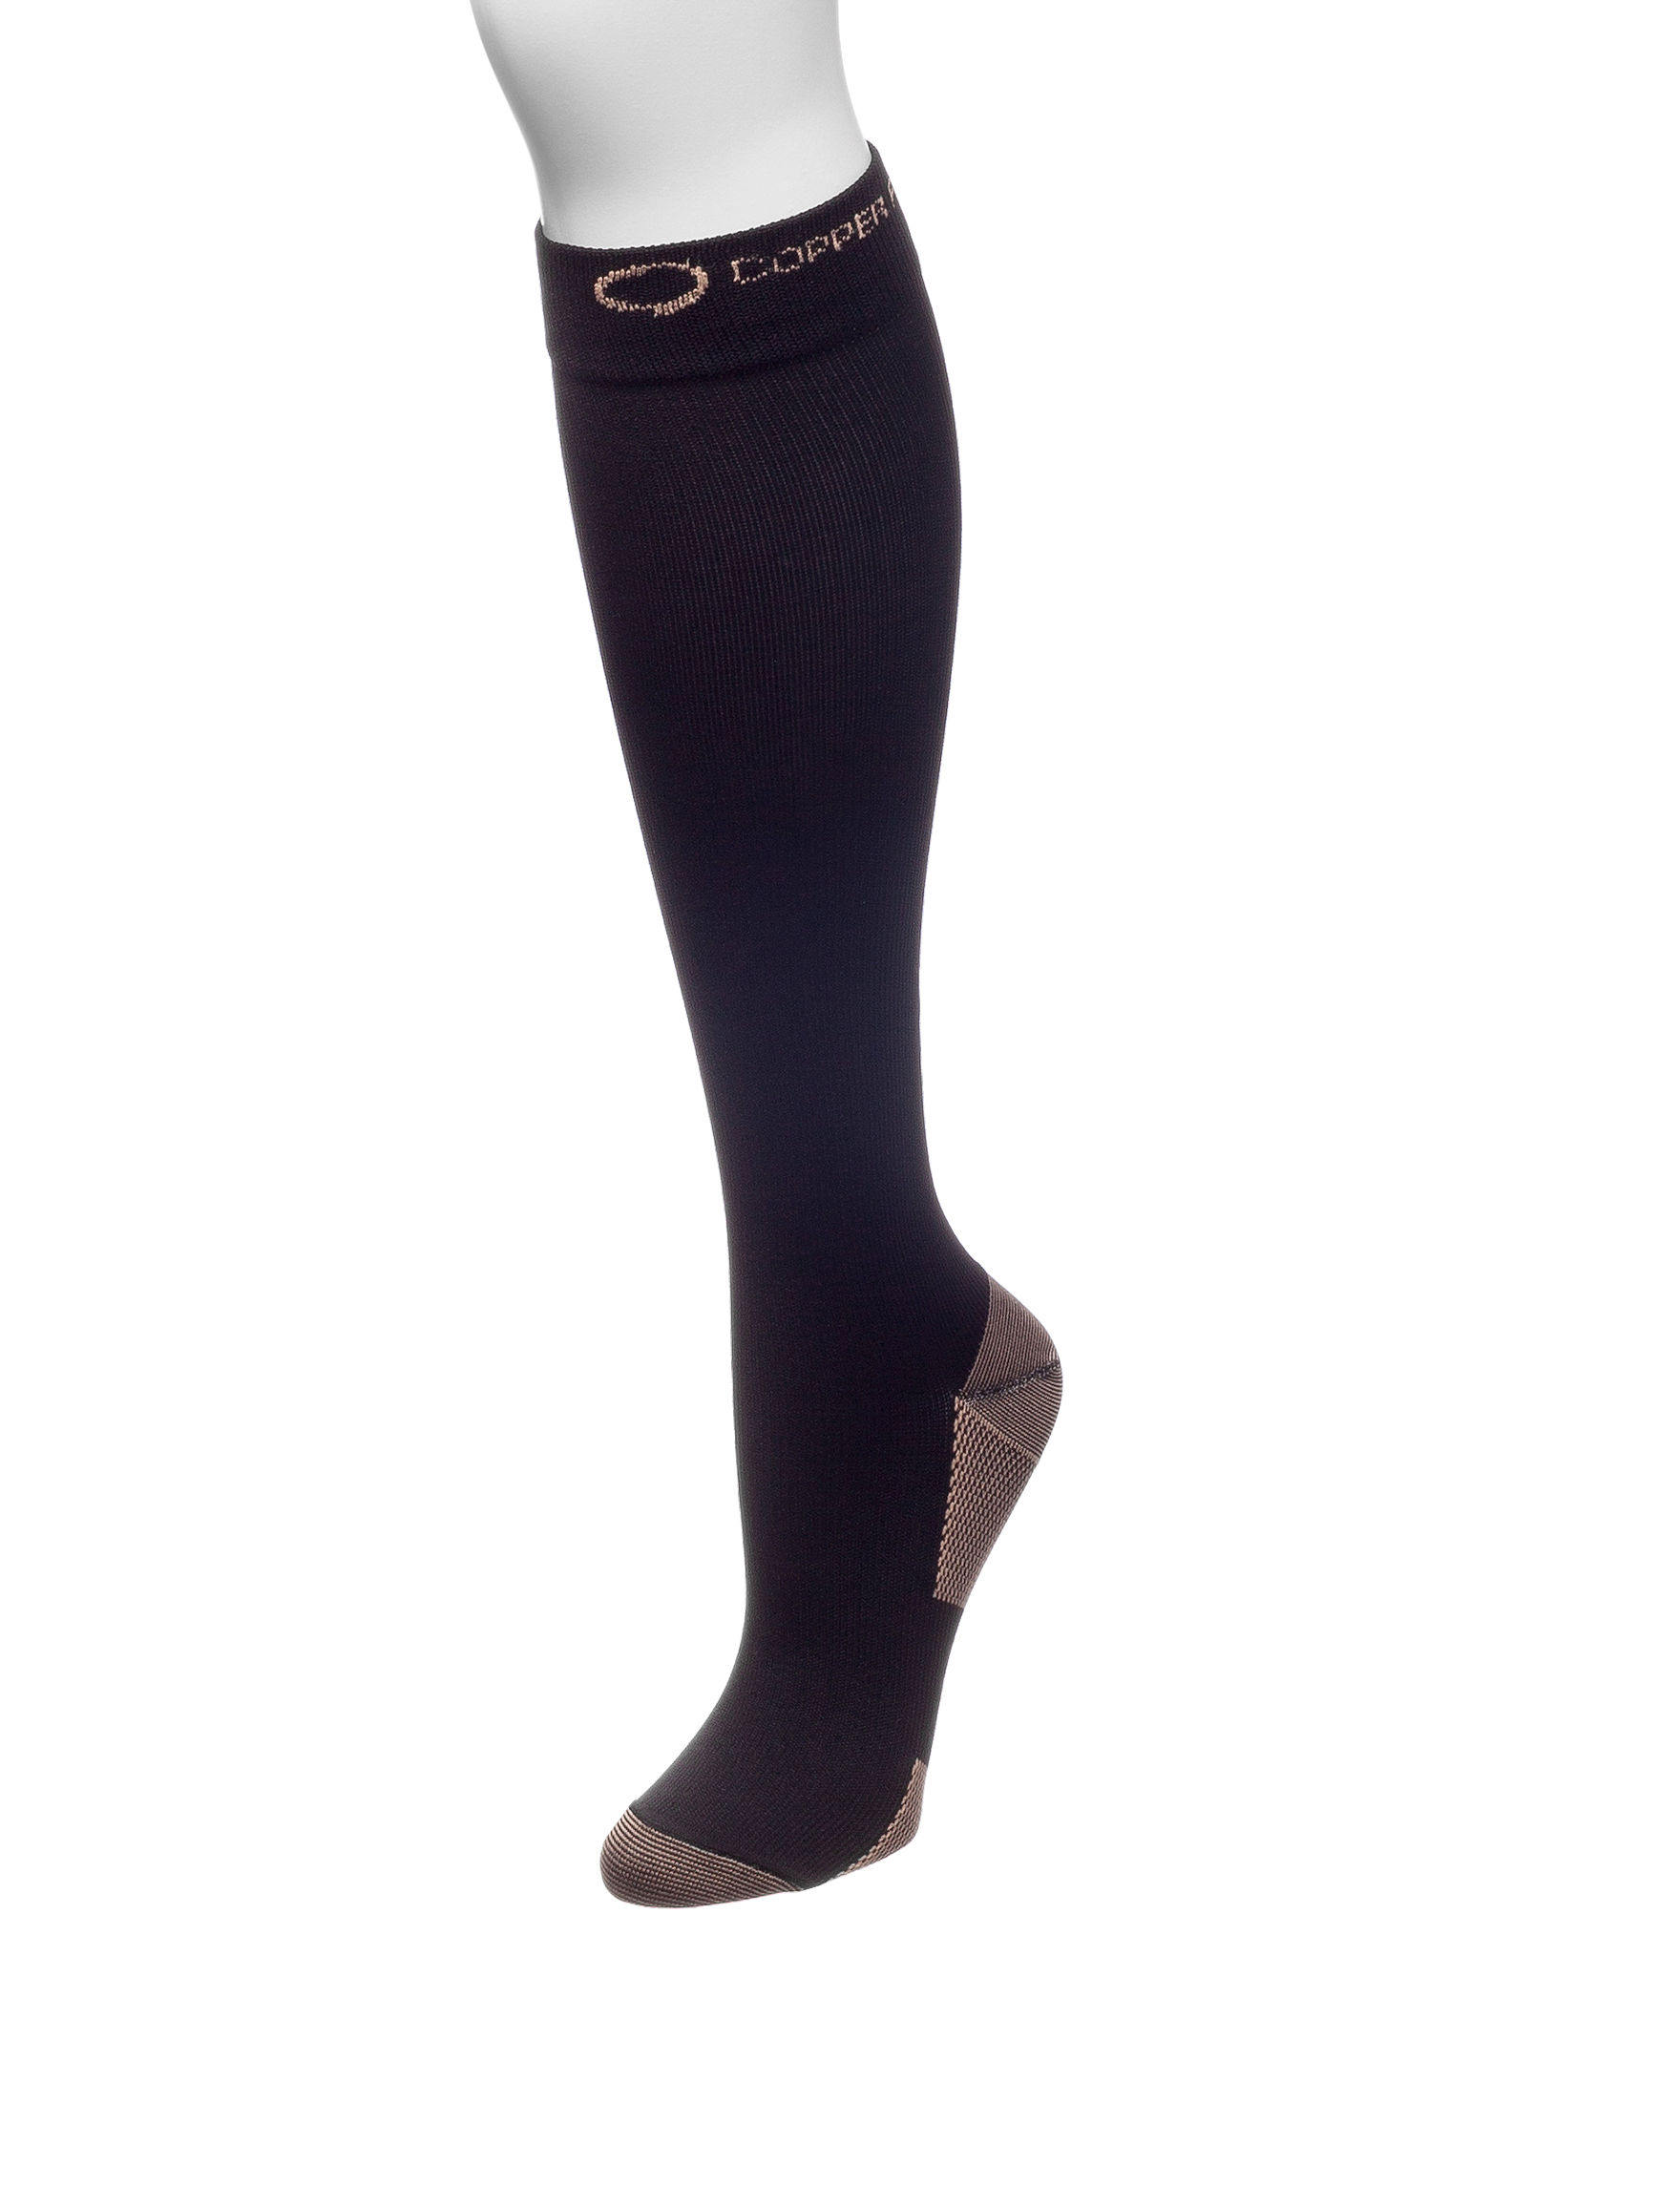 Copper Fit Knee High Compression Socks | Stage Stores